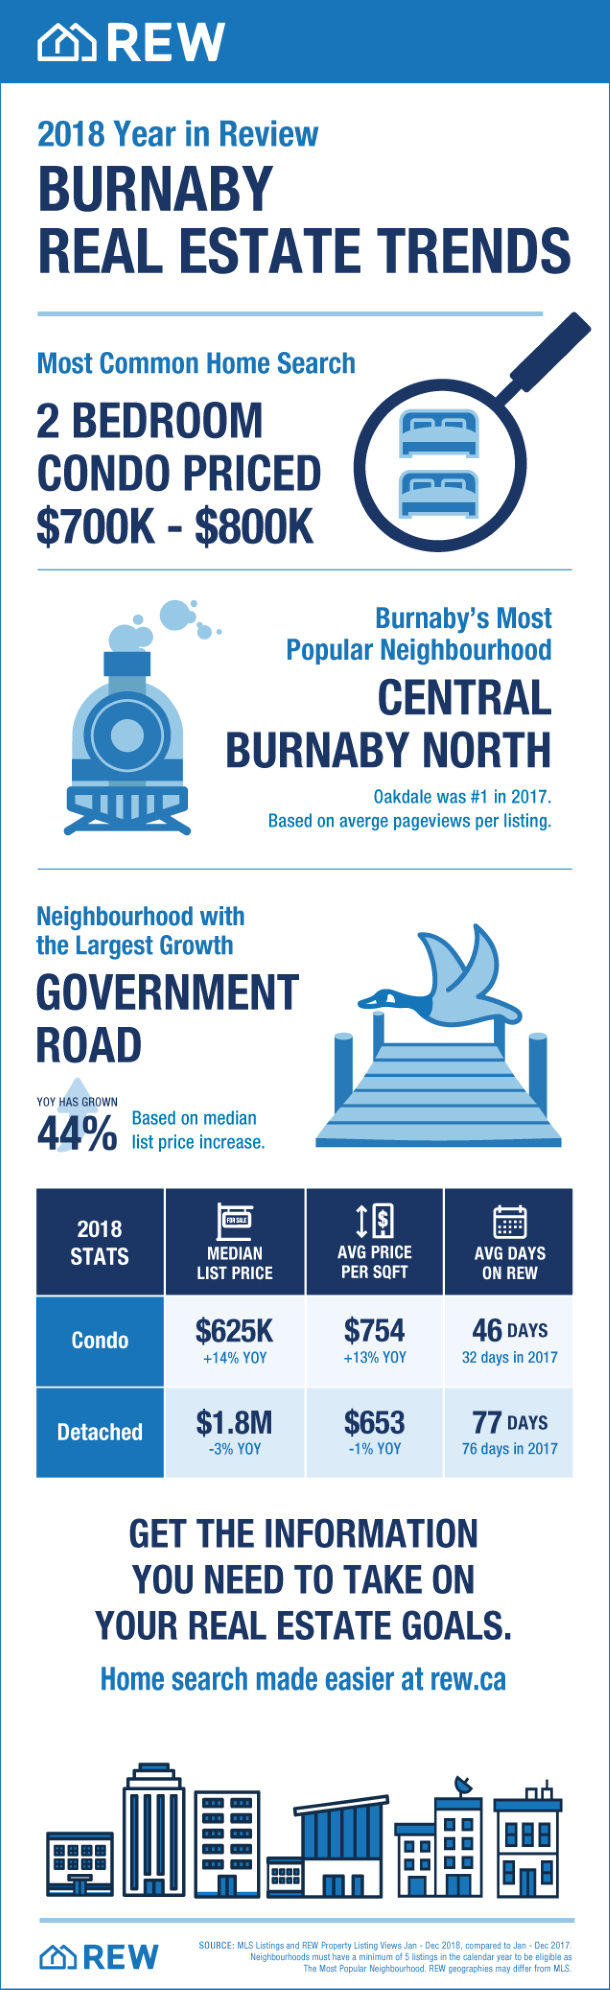 Burnaby Real Estate Trends 2018